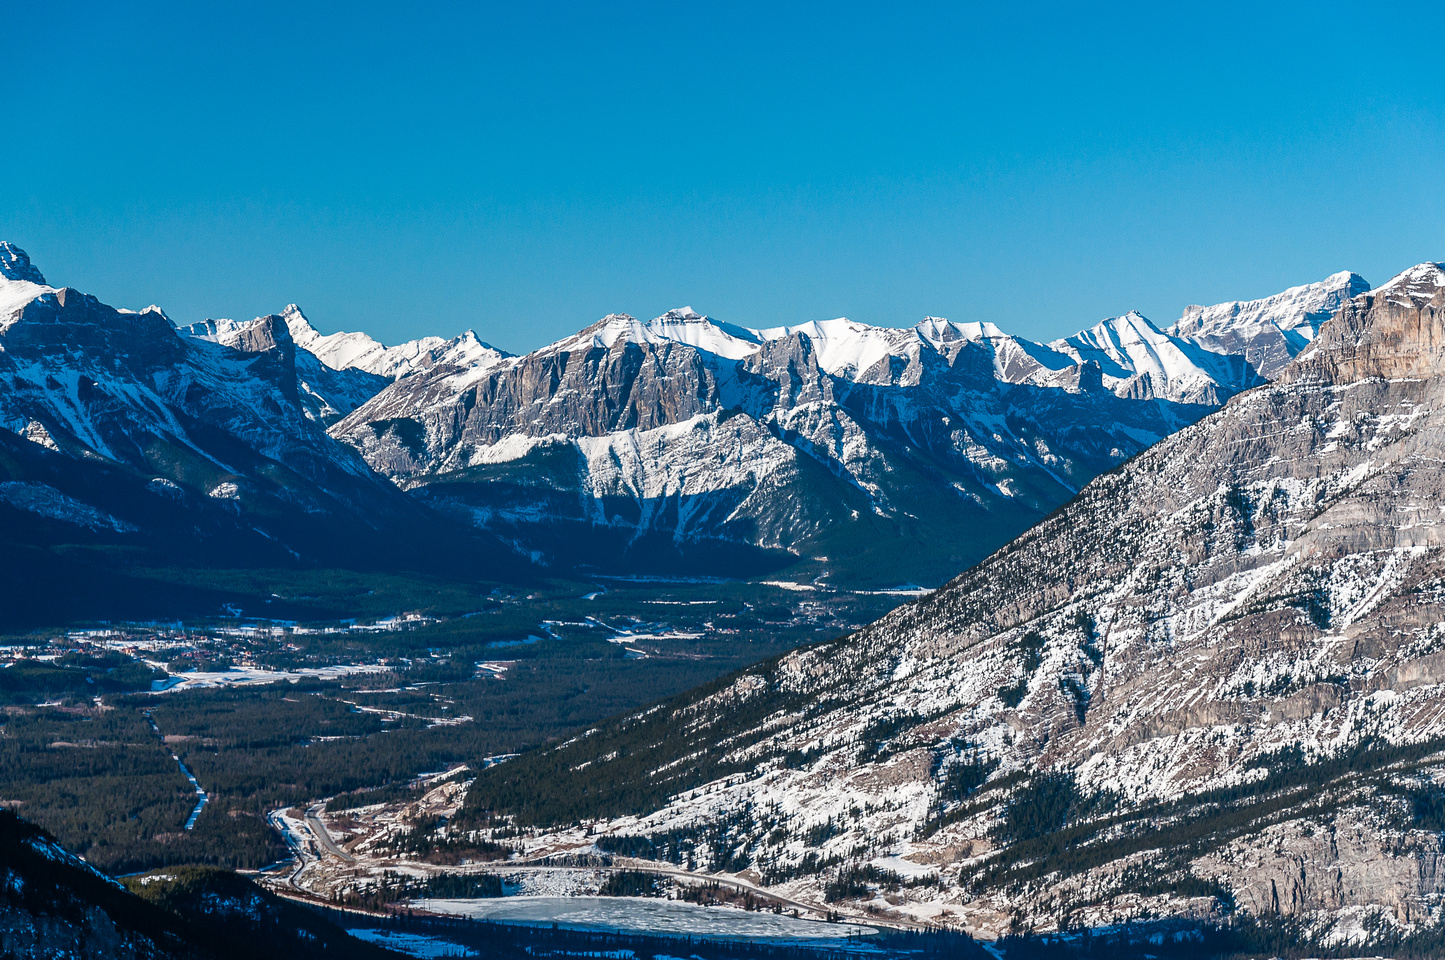 Ha Ling and Rundle over the town of Canmore.